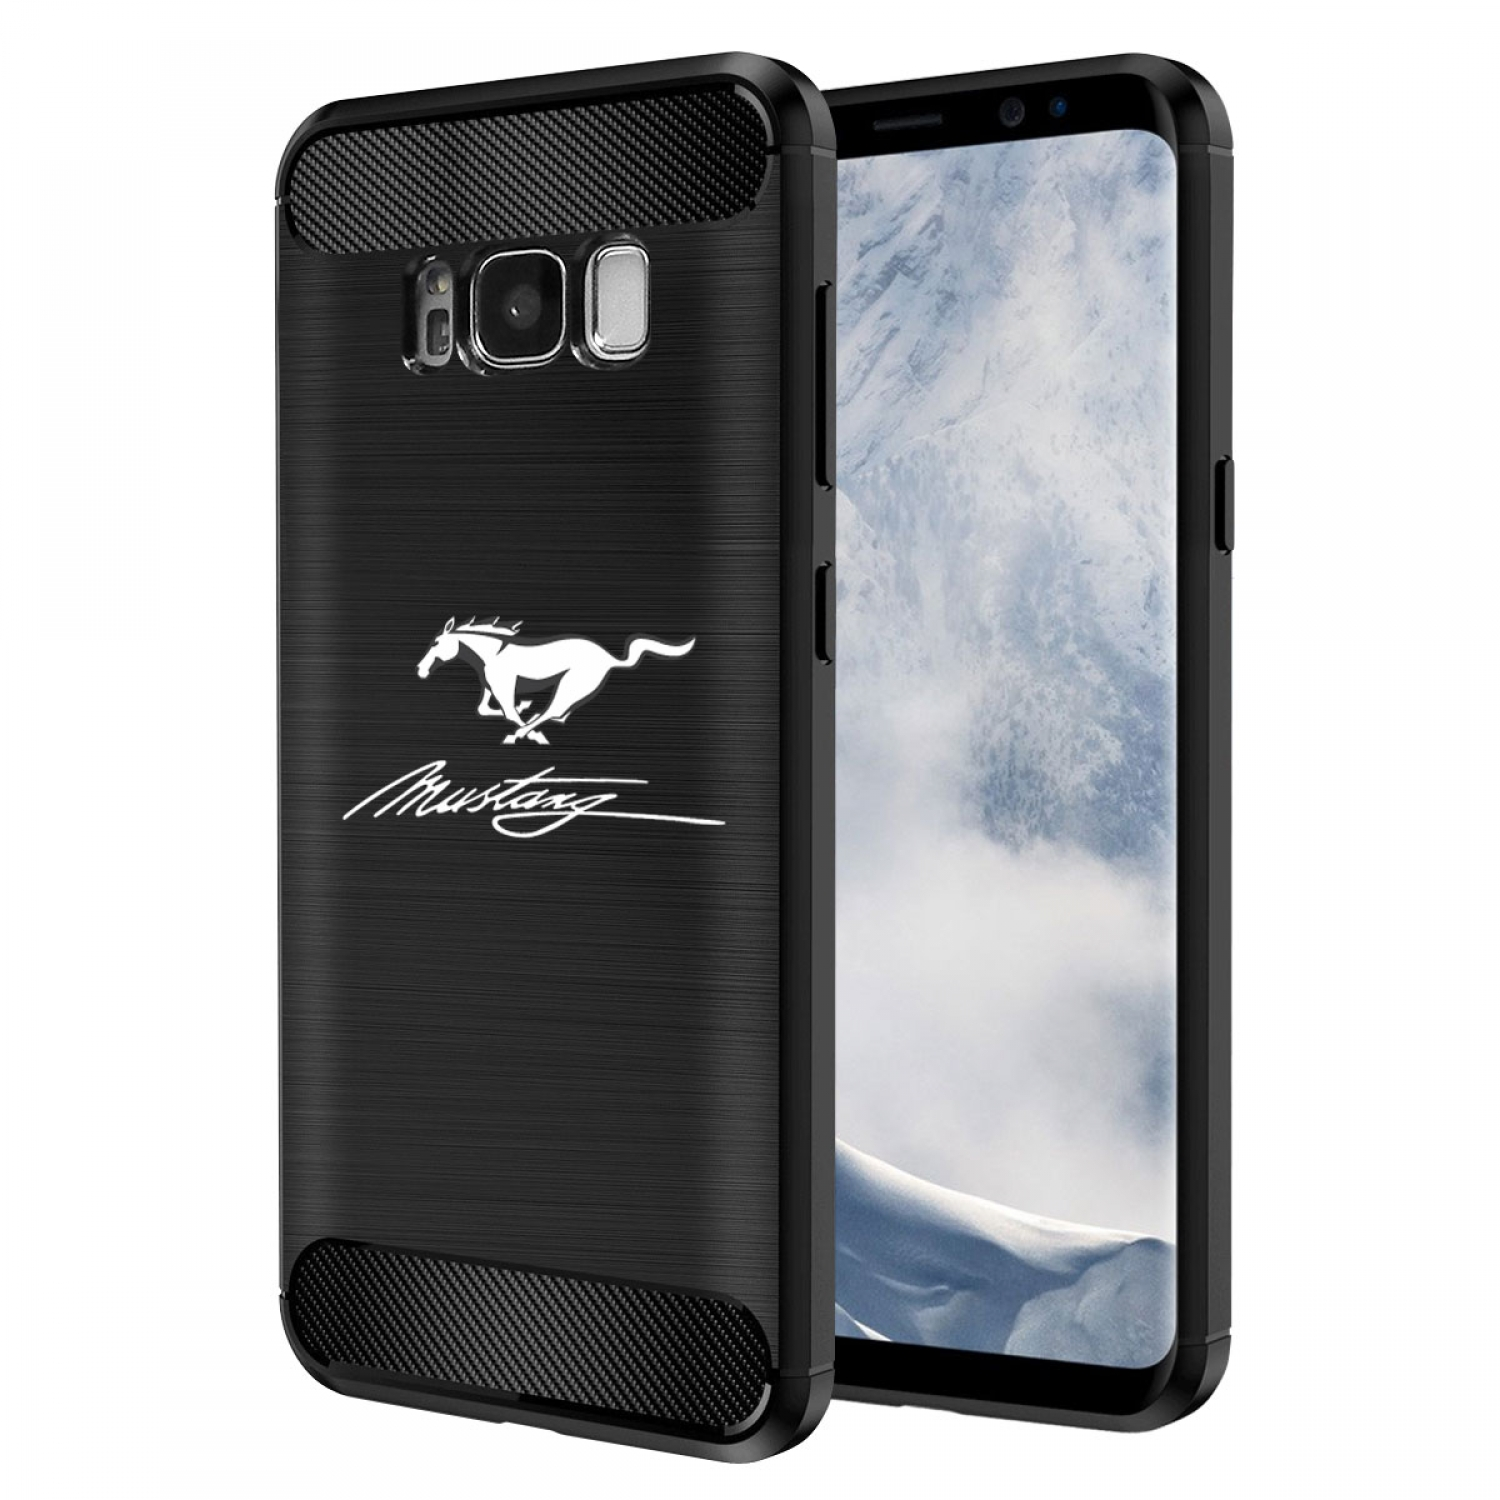 Galaxy S8 Case, Ford Mustang Script TPU Shockproof Black Carbon Fiber Textures Stripes Cell Phone Case